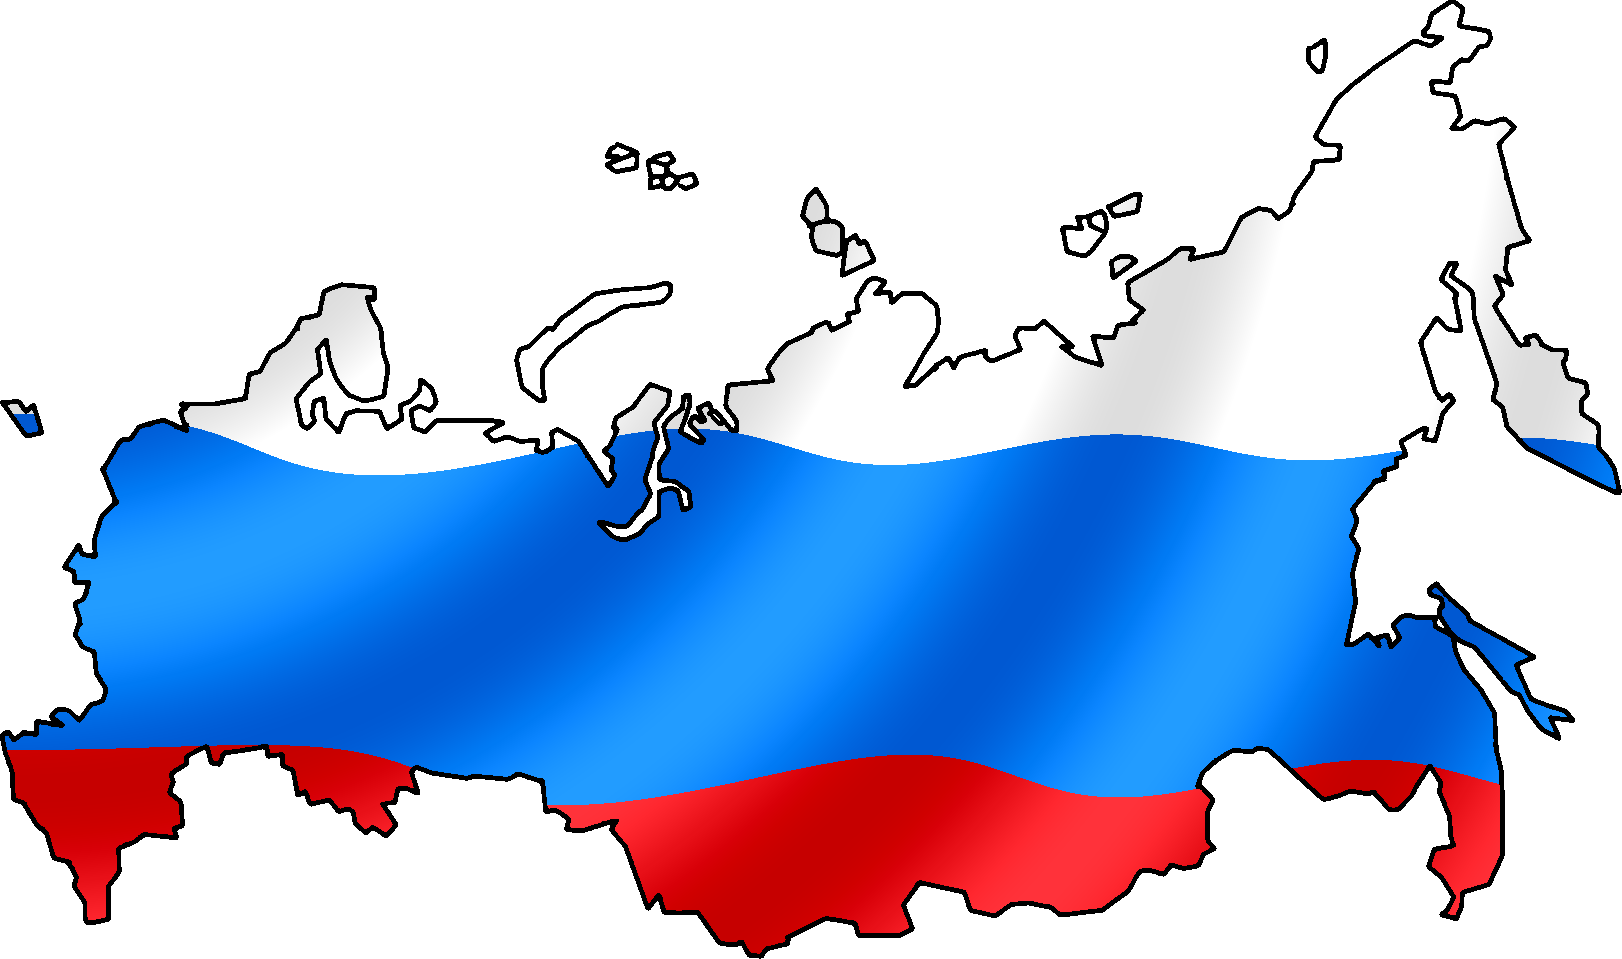 File:Russian Flag with map.png.